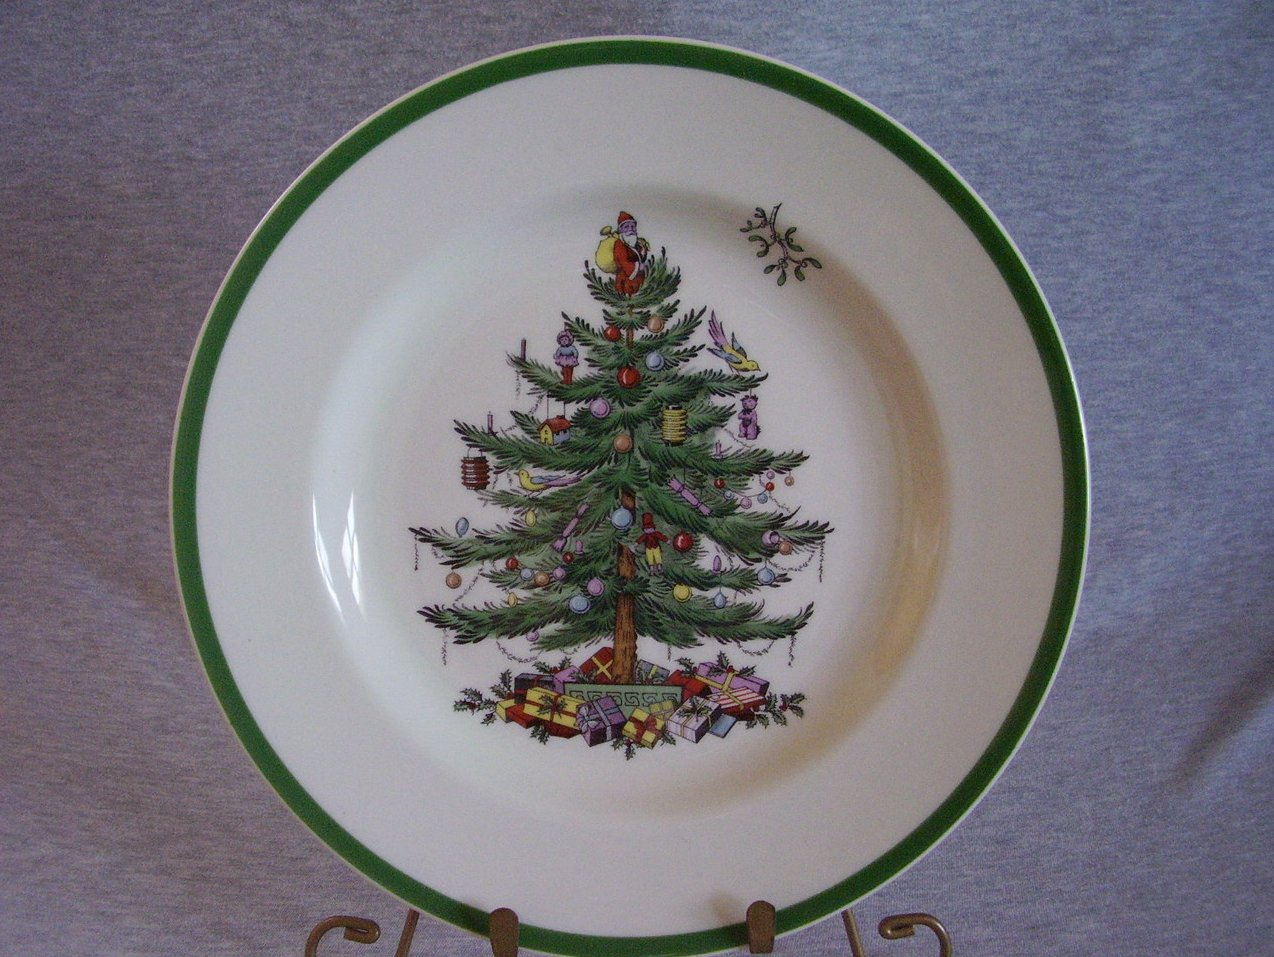 Spode Christmas Tree Dinner Plate Green Trim